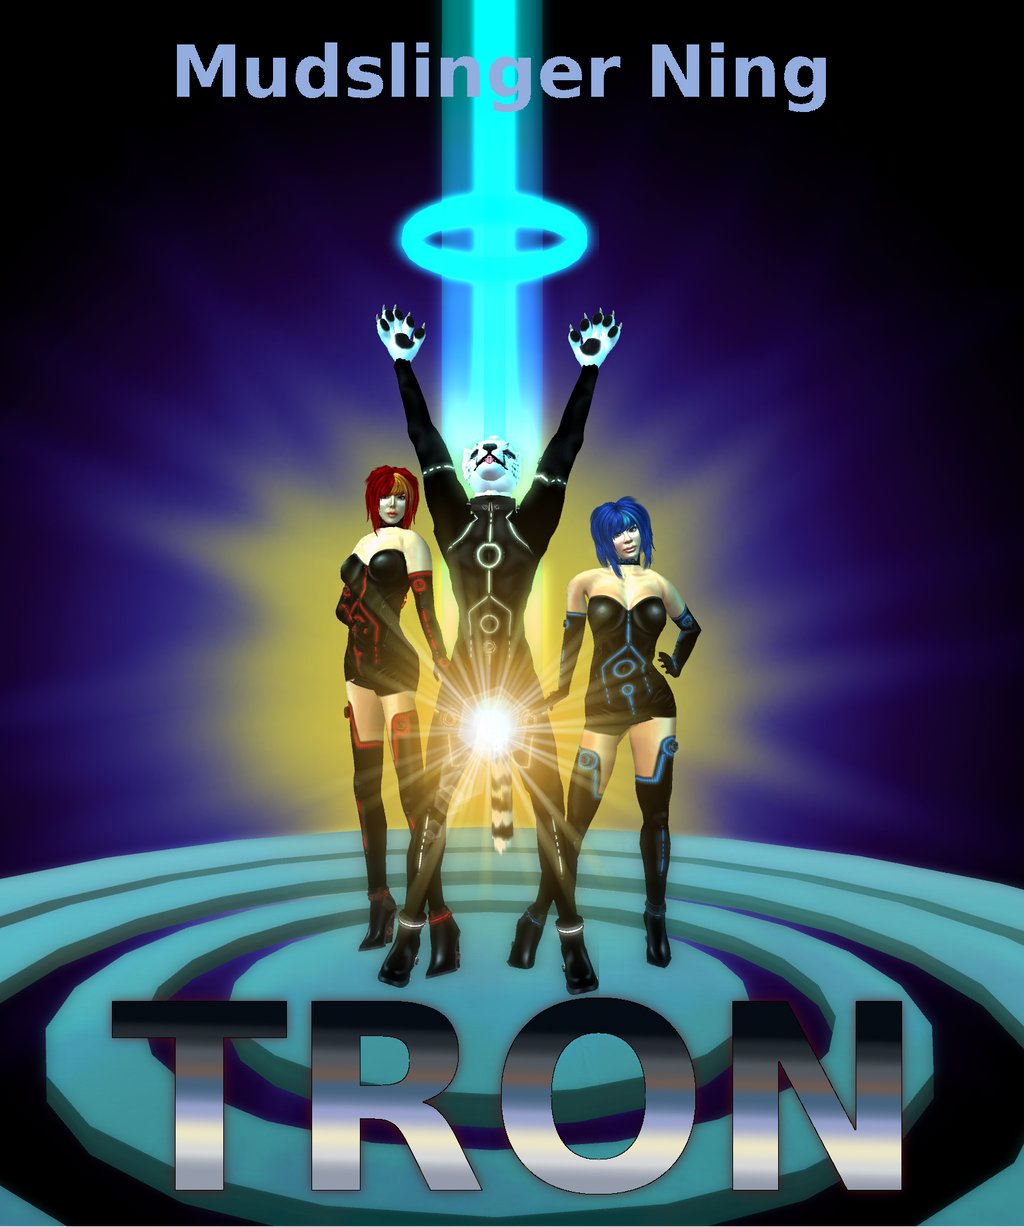 Parody SL Movie Poster: Tron